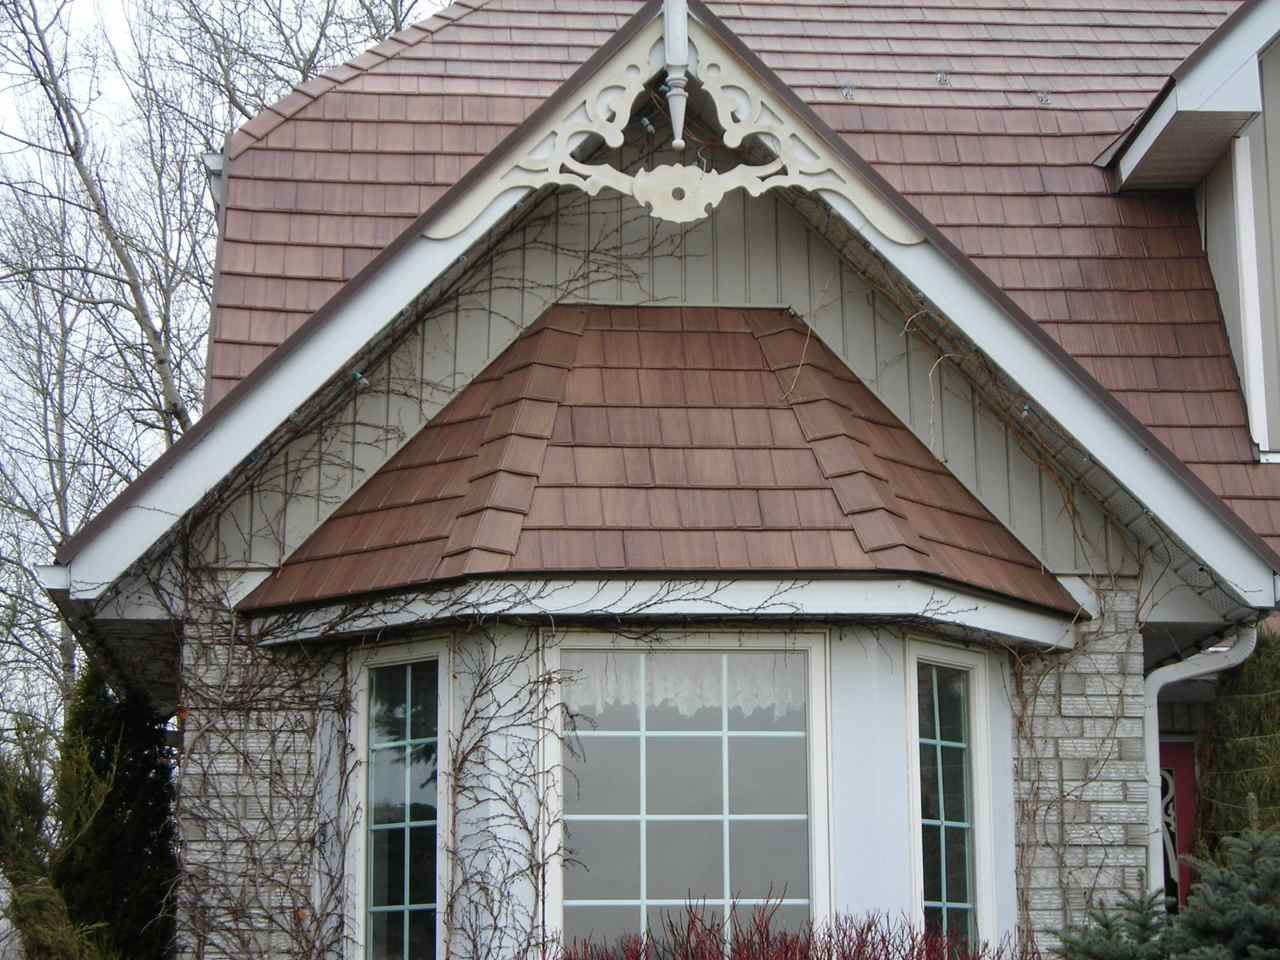 This metal roof is just one of Kassel and Irons